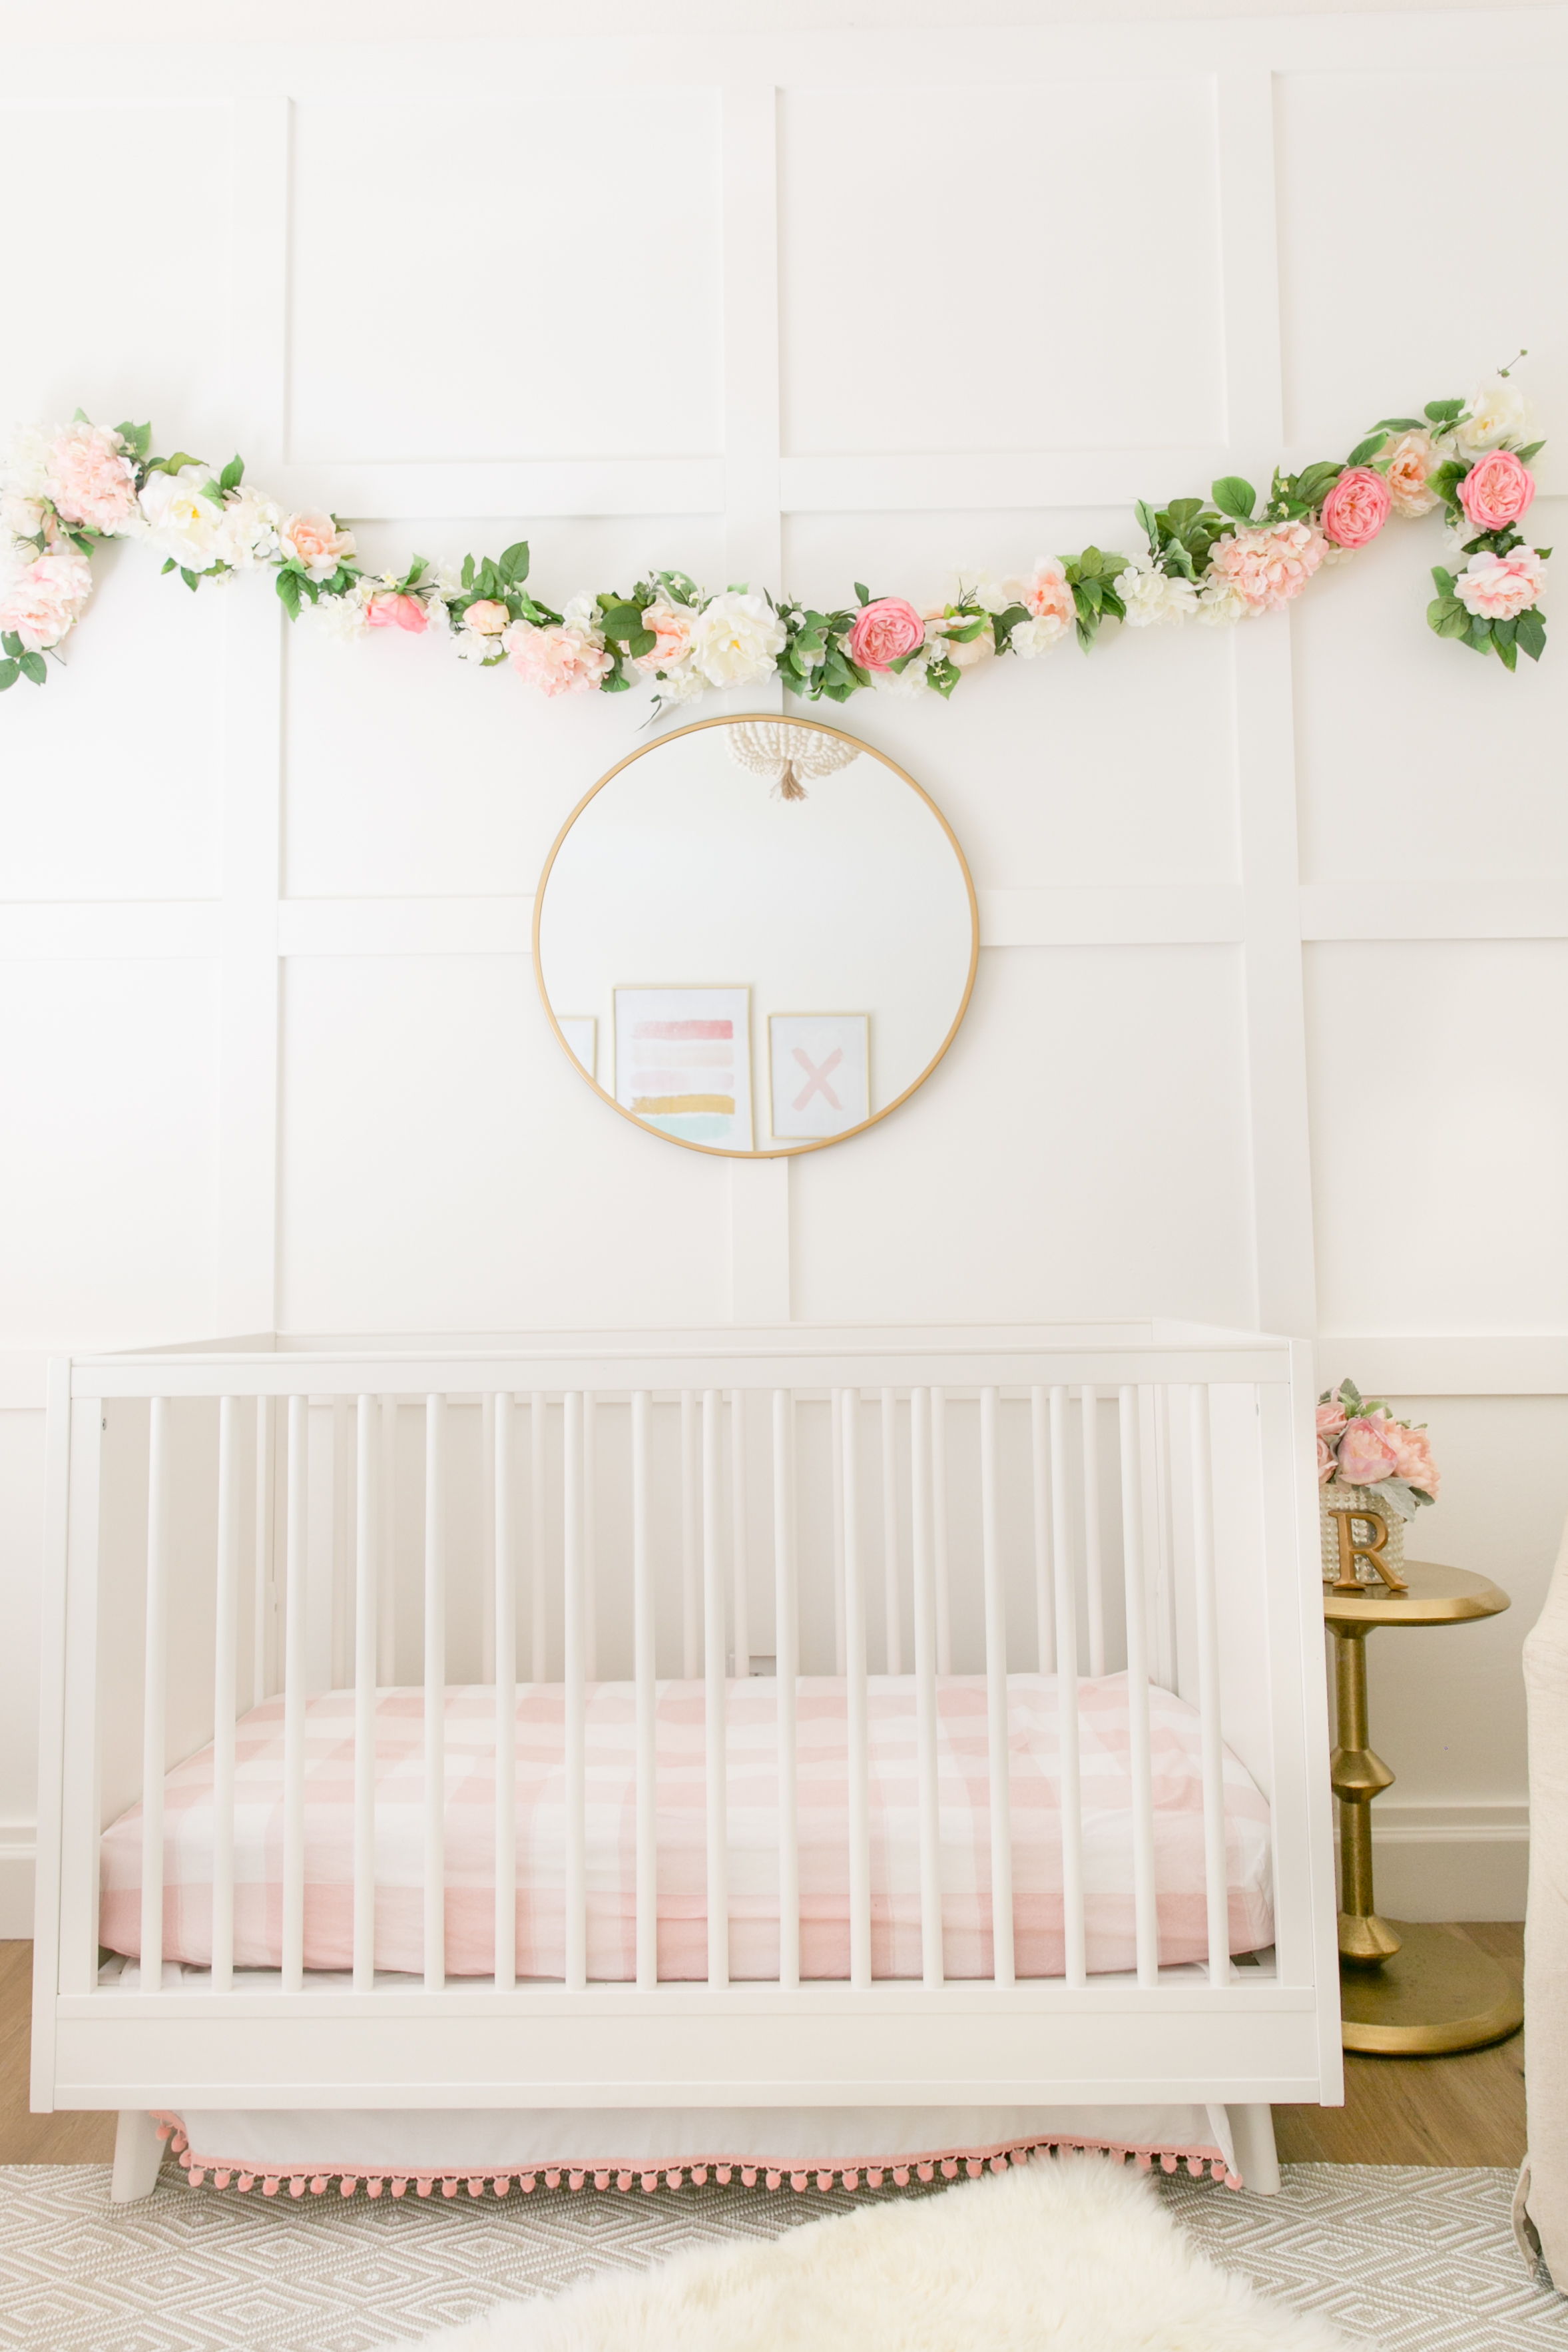 Square Molding Accent Wall with Floral Garland in Nursery